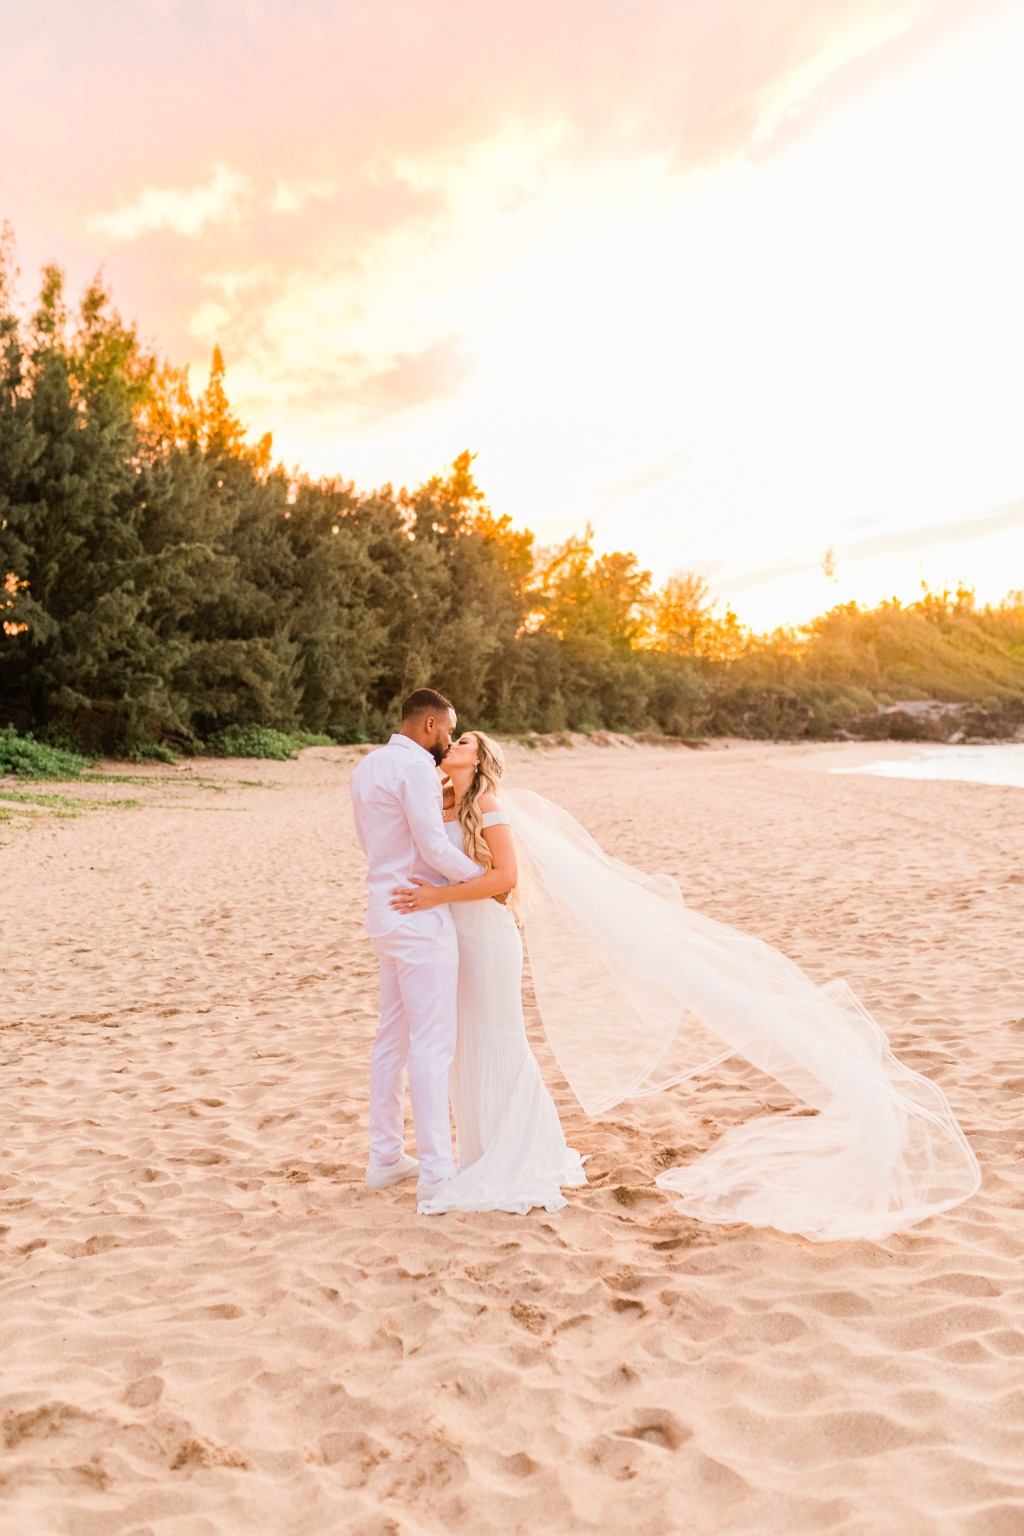 When the wind blows at the most PERFECT time during the most PERFECT sunset with the most PERFECT couple!!